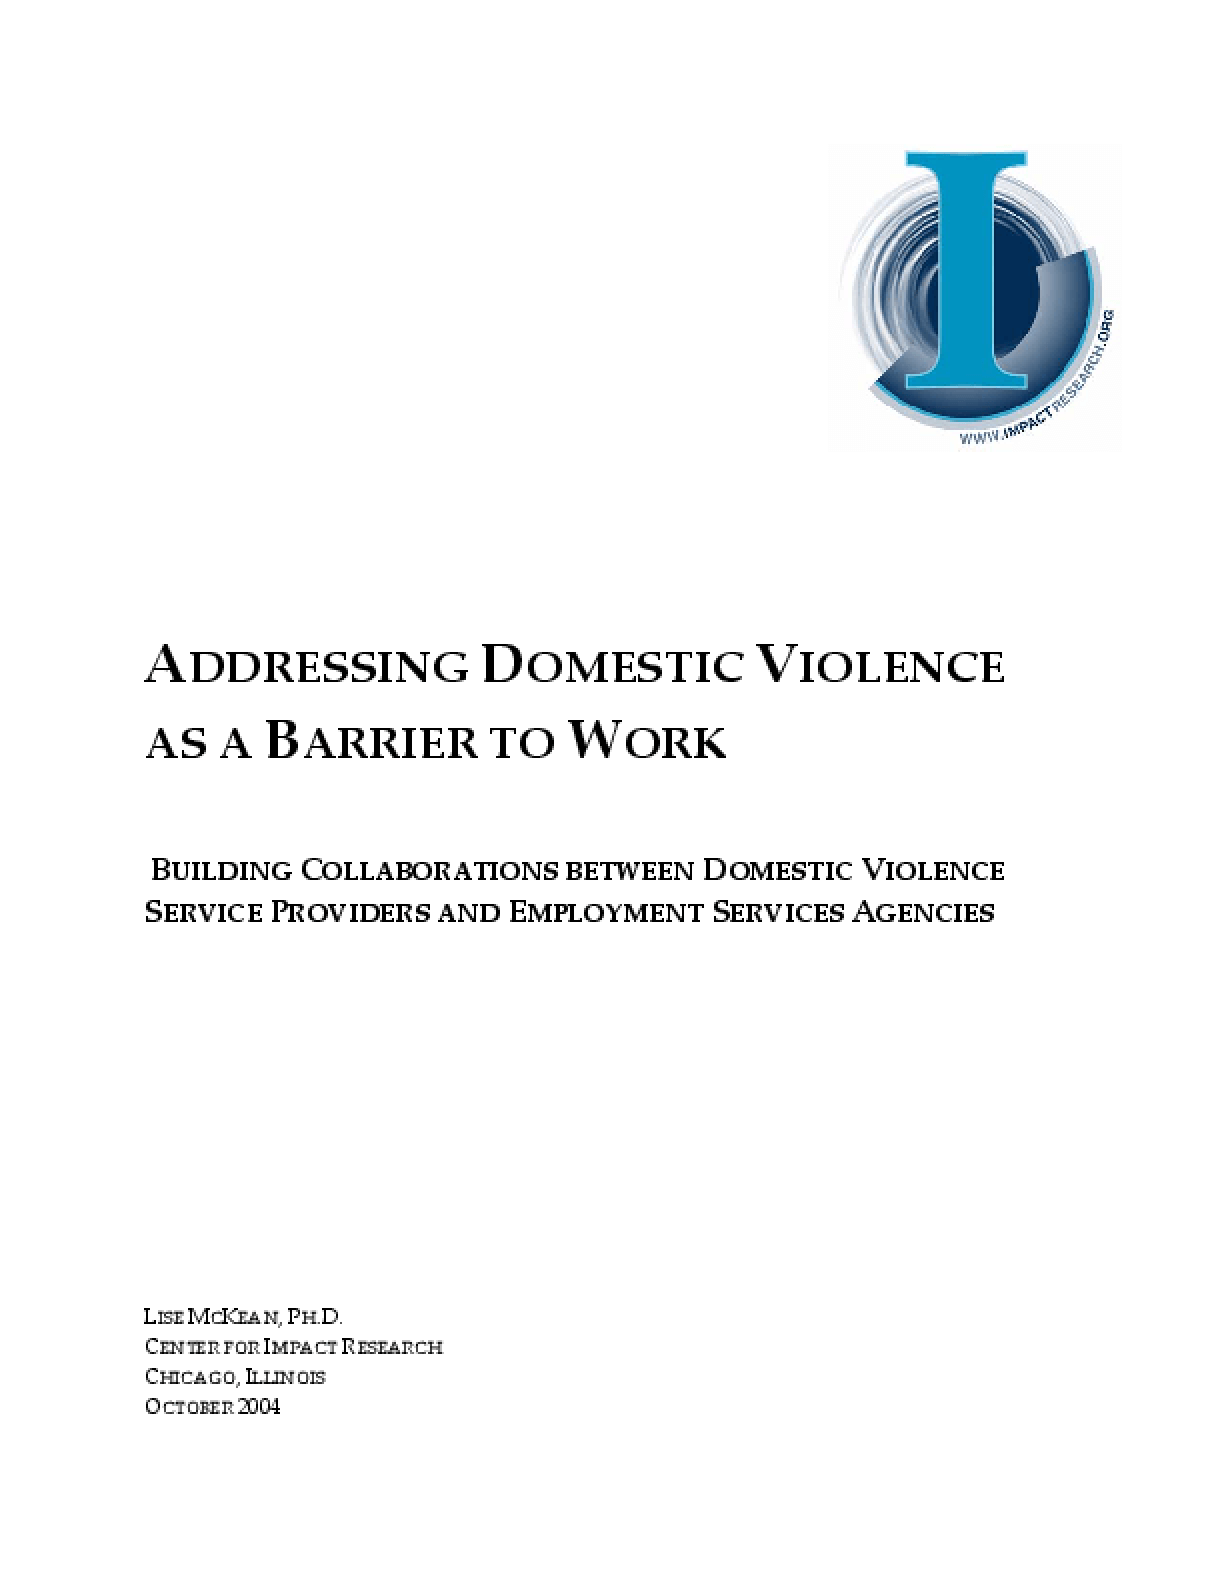 Addressing Domestic Violence as a Barrier to Work: Building Collaborations between Domestic Violence Service Providers and Employment Services Agencies